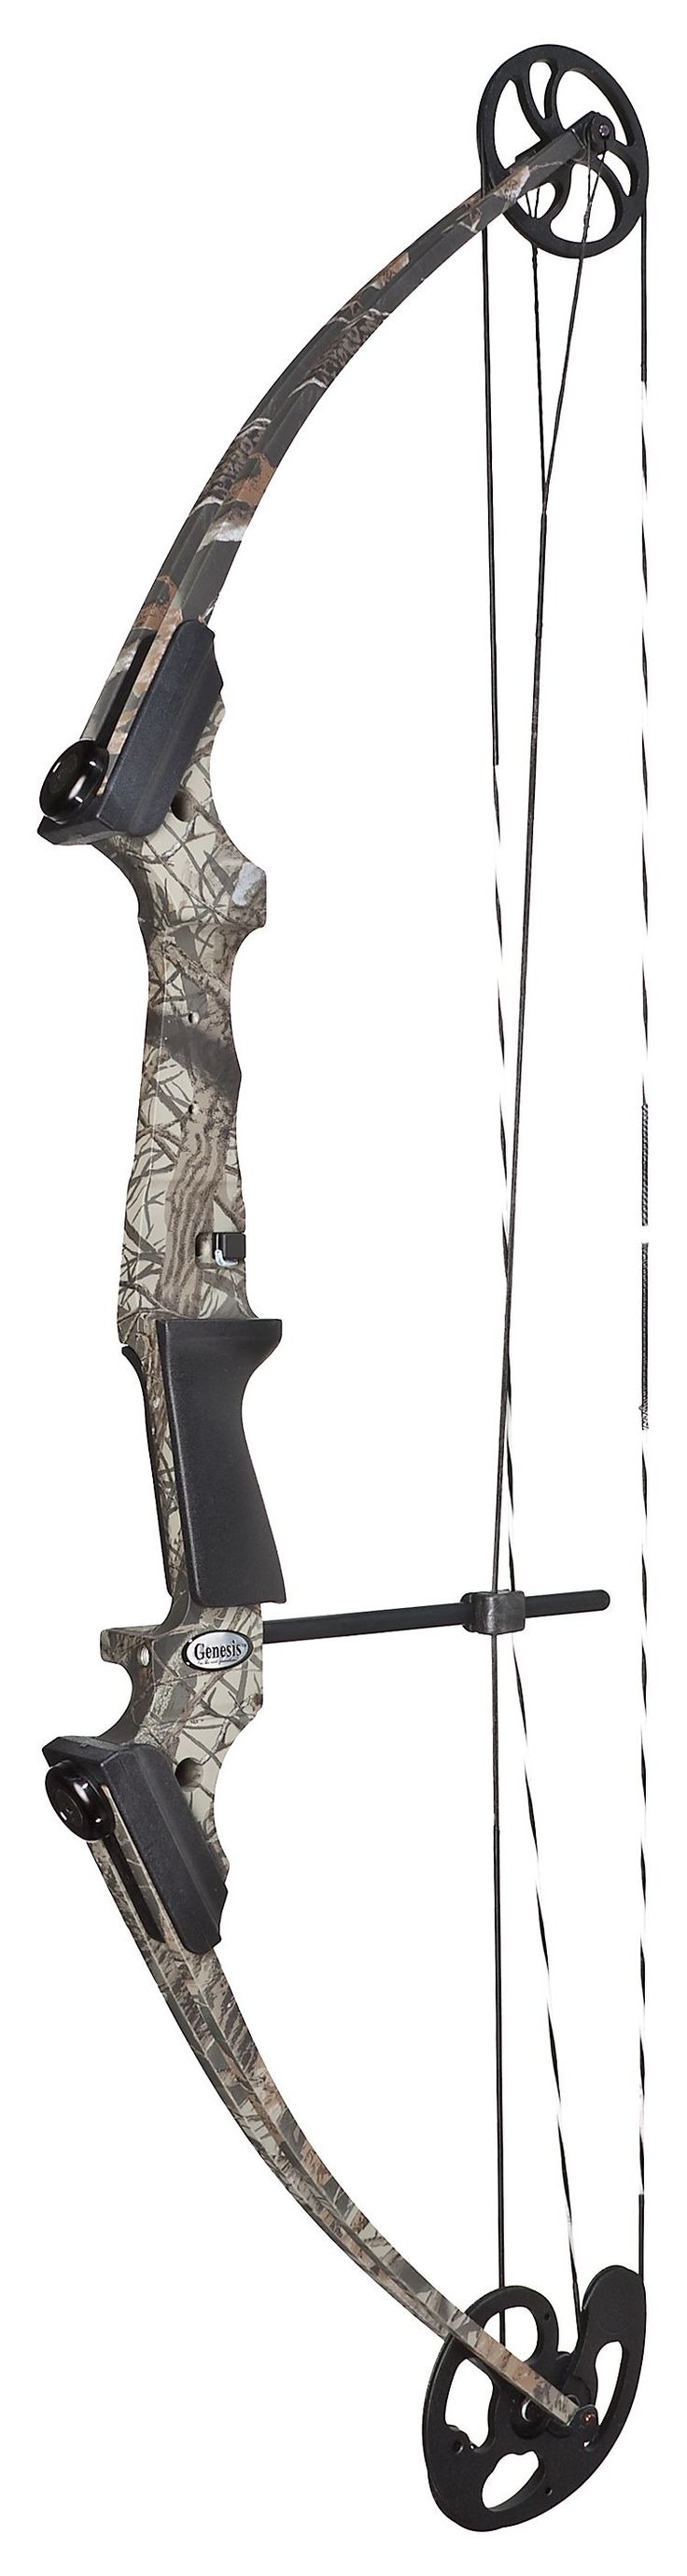 Genesis compound bow!!! This and some arrows! Don't want it in pink!!! Either TURQUOISE or camo!